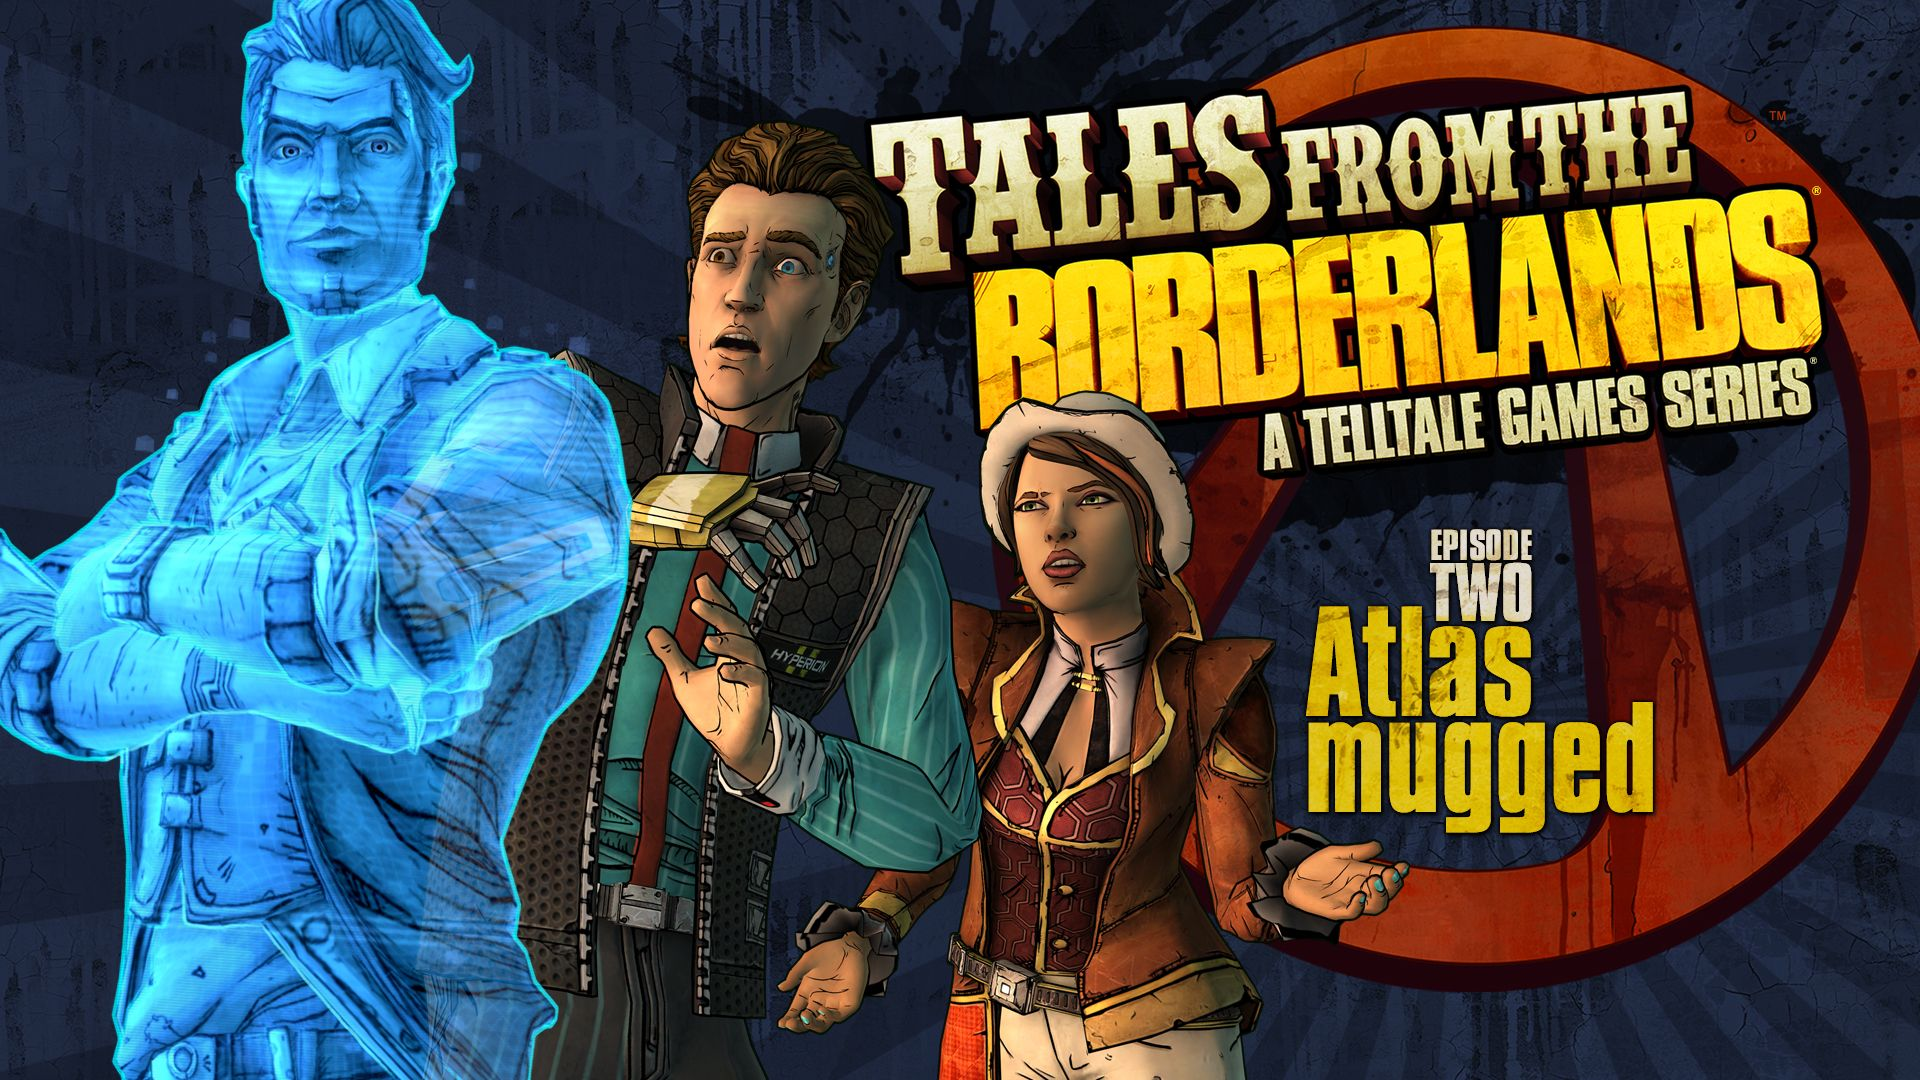 New Artwork For Tales from the Borderlands Episode 2